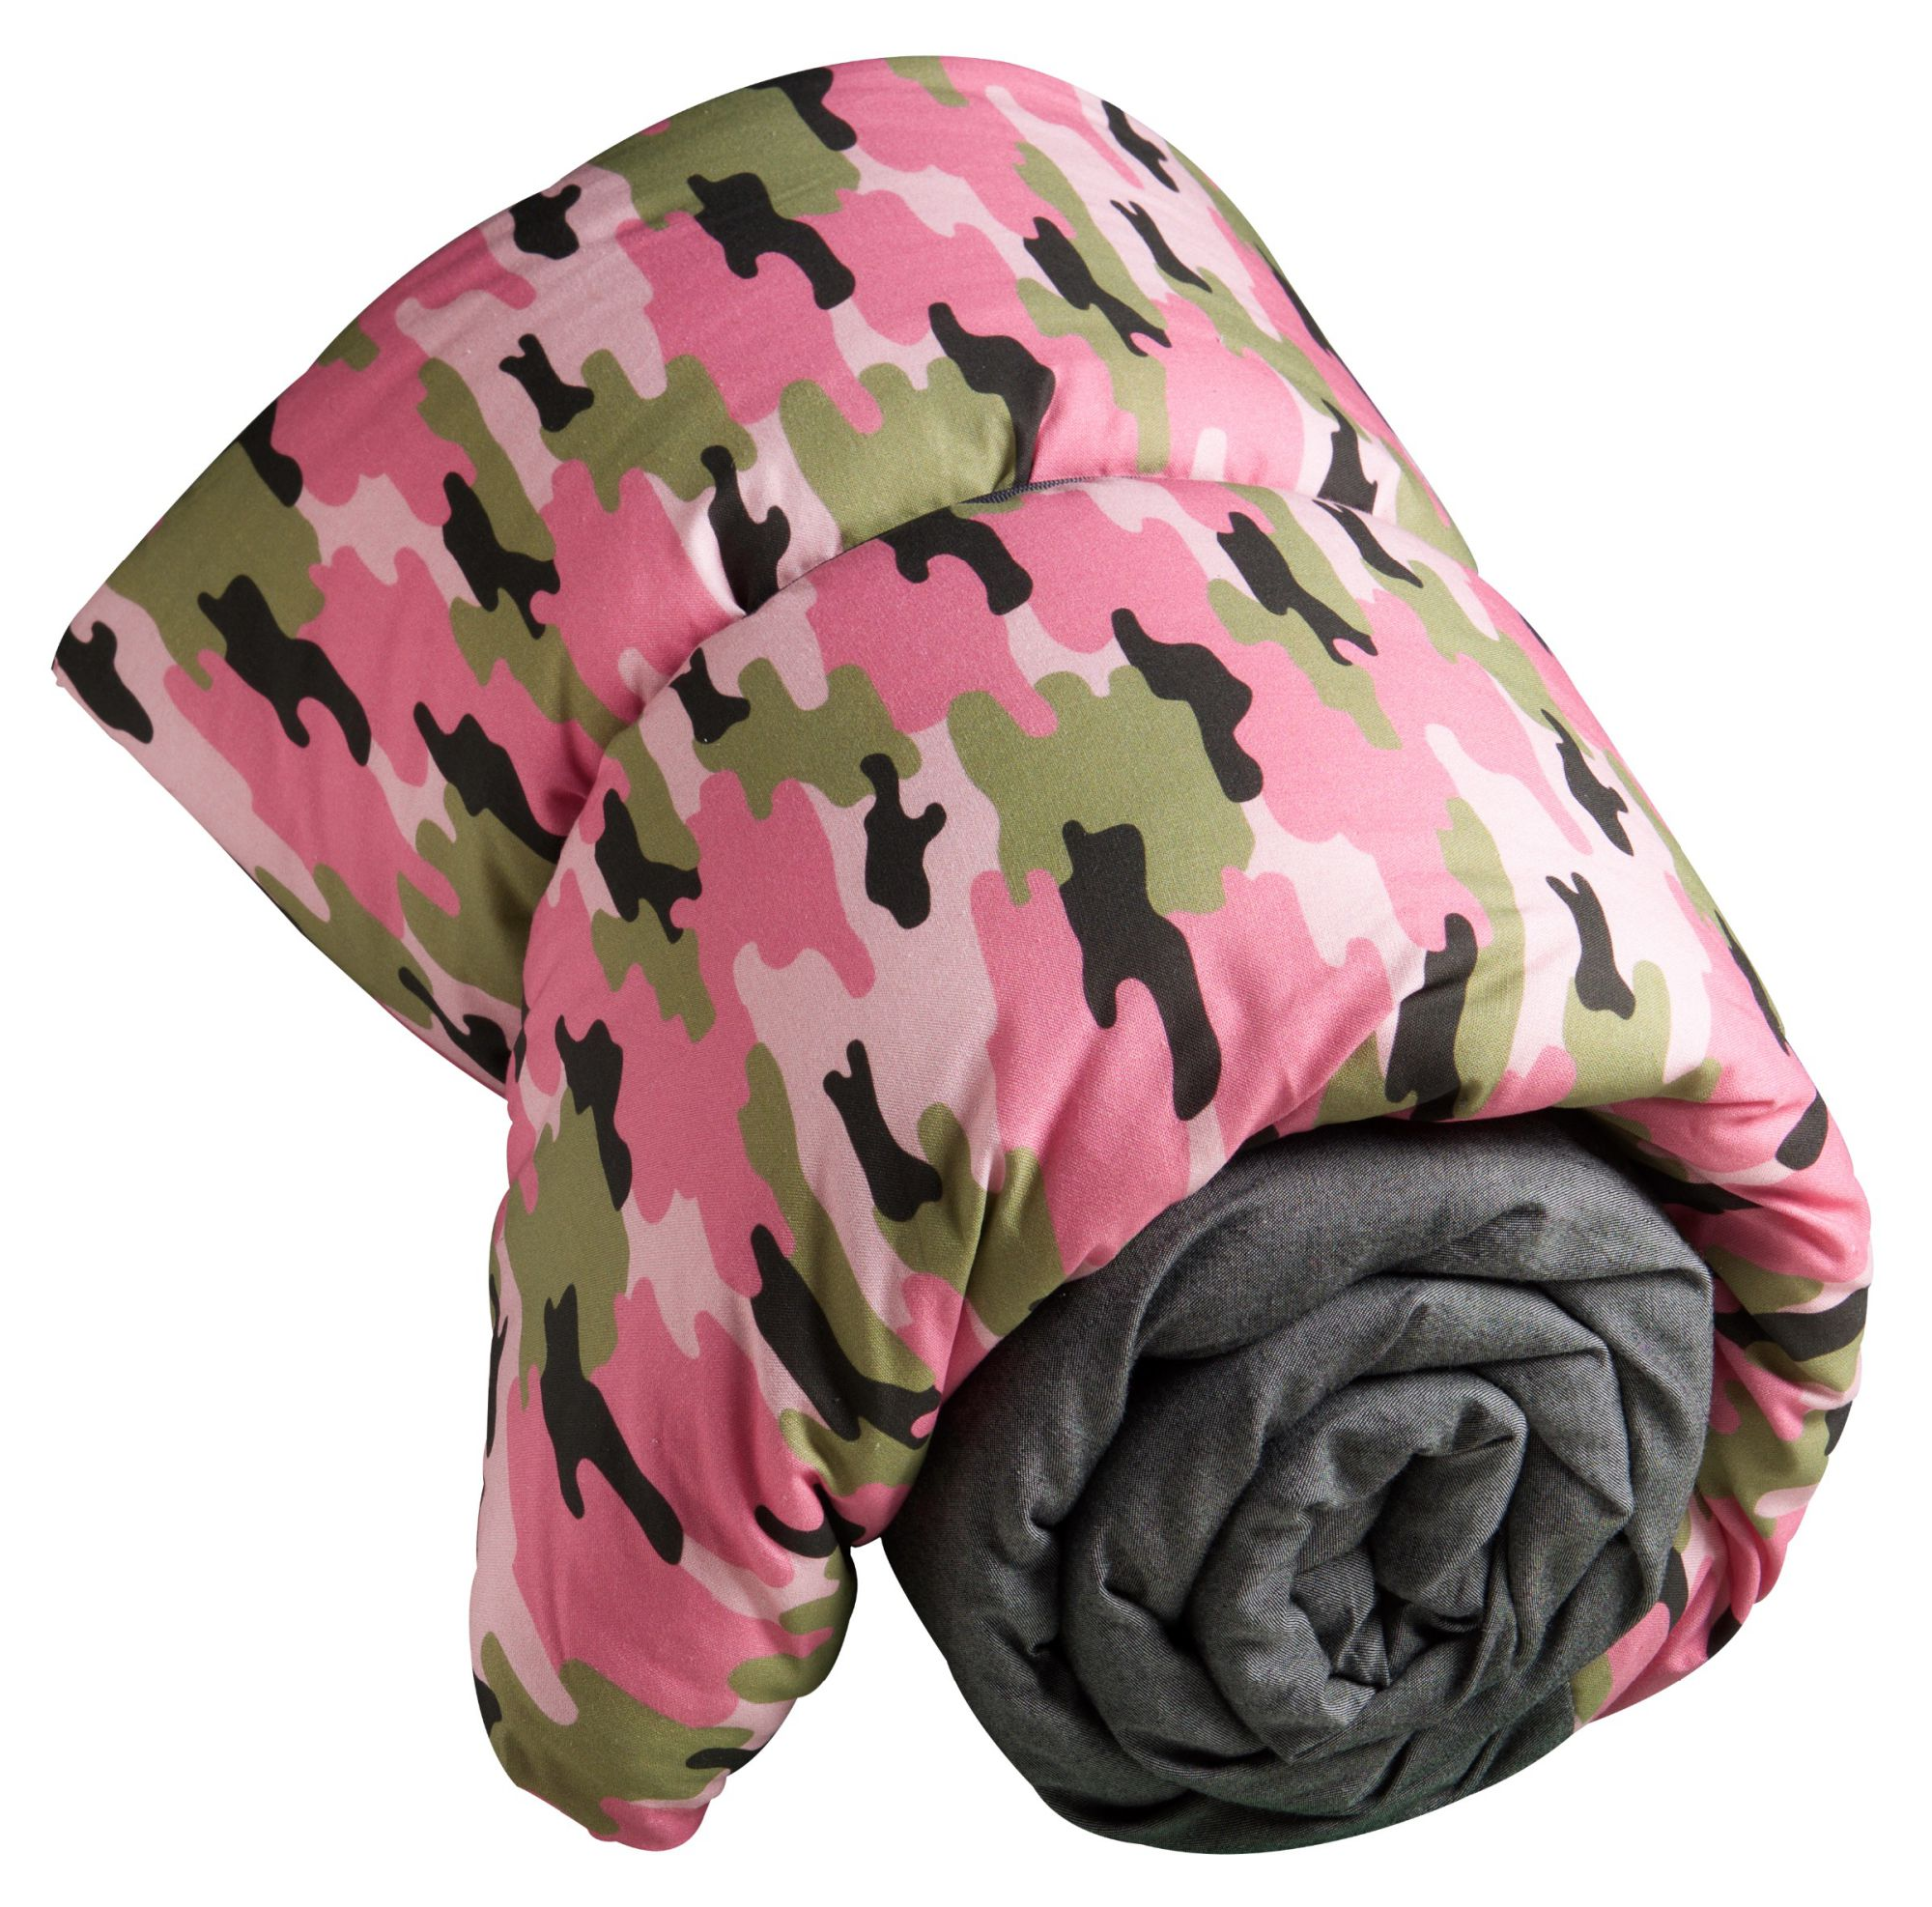 Undercover Sleeping Bag Camouflage